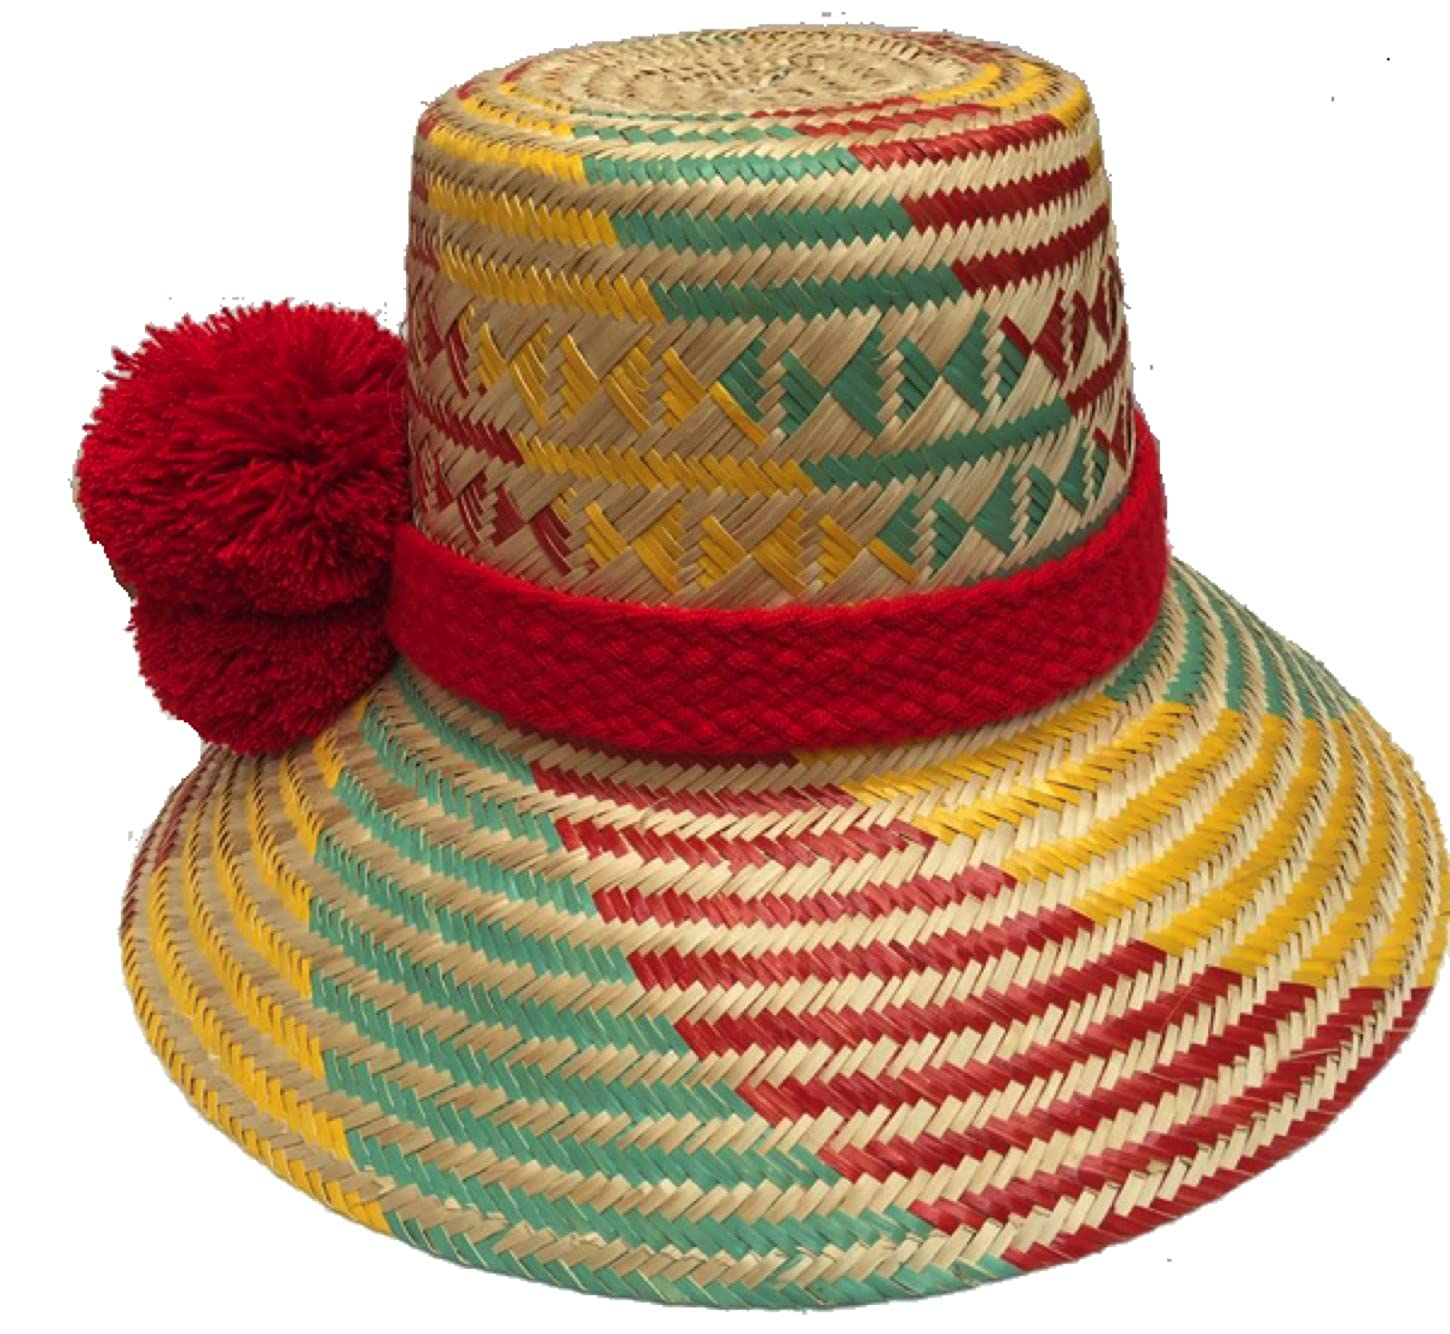 Sun Hat Original Wayuu Pom Poms 100% Iraka Palm Straw Hand-Knitted   Wool  Pompoms at Amazon Women s Clothing store  38949d3faa4